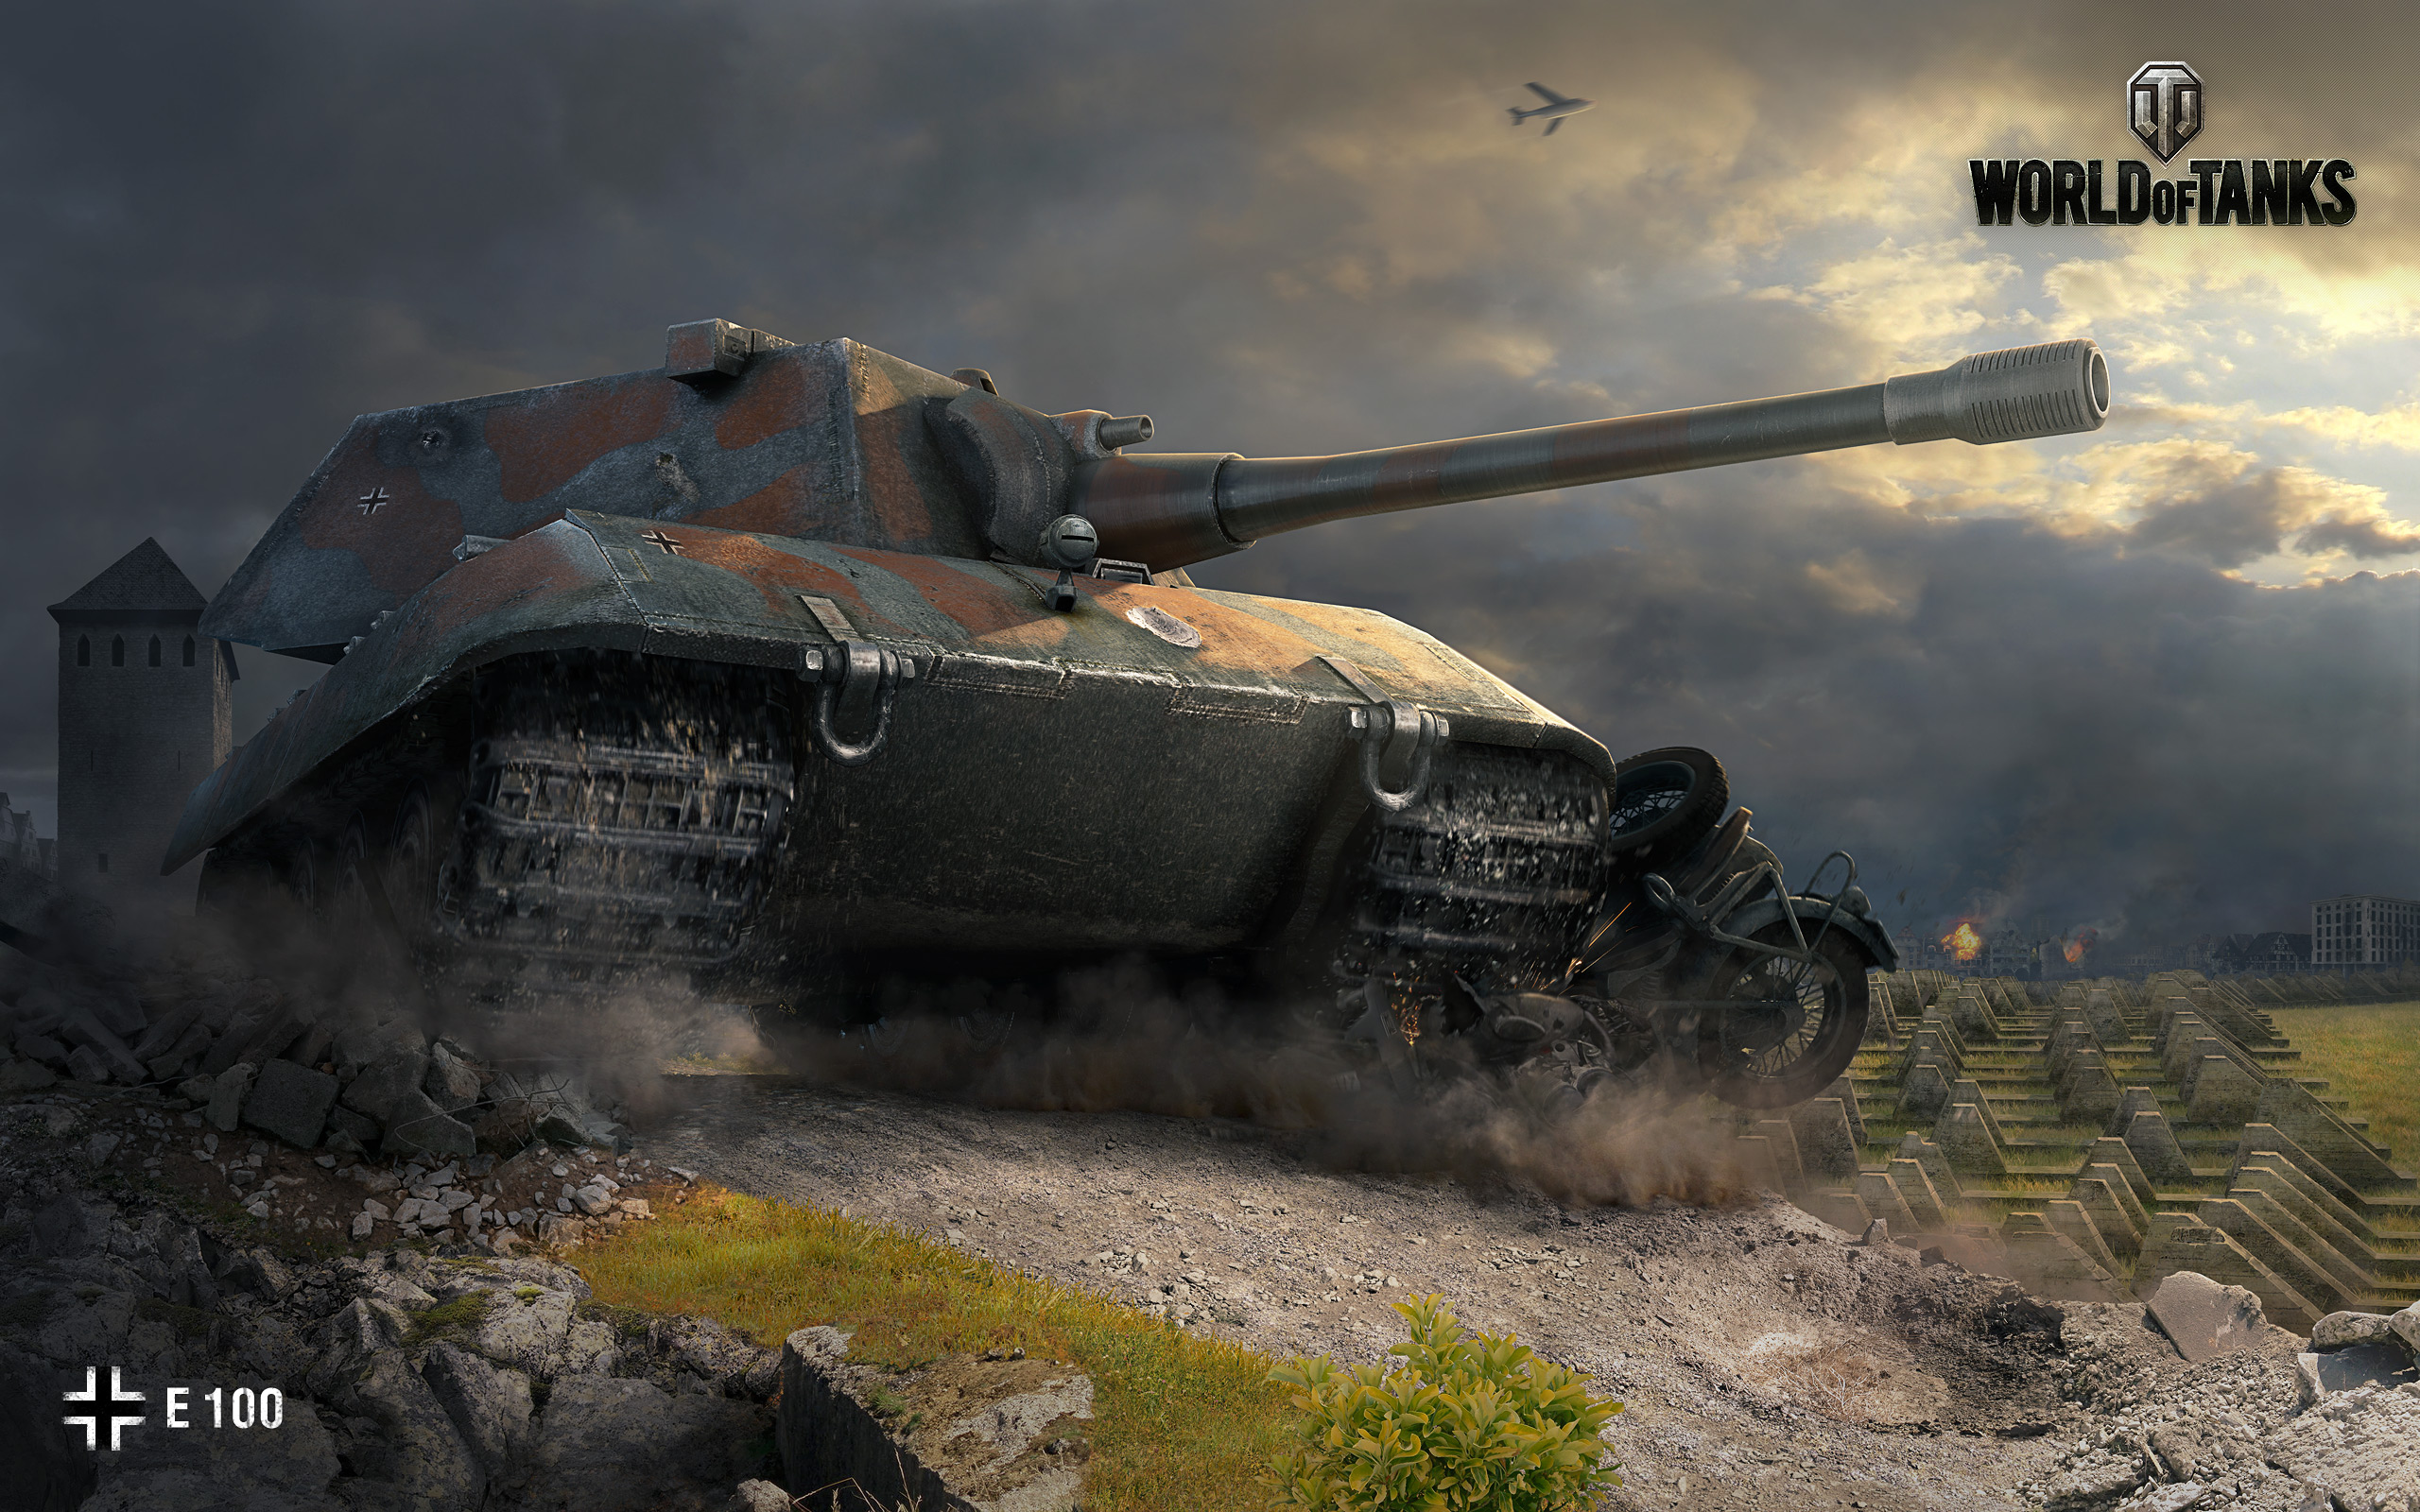 E 100 World Of Tanks 2023.22 Kb